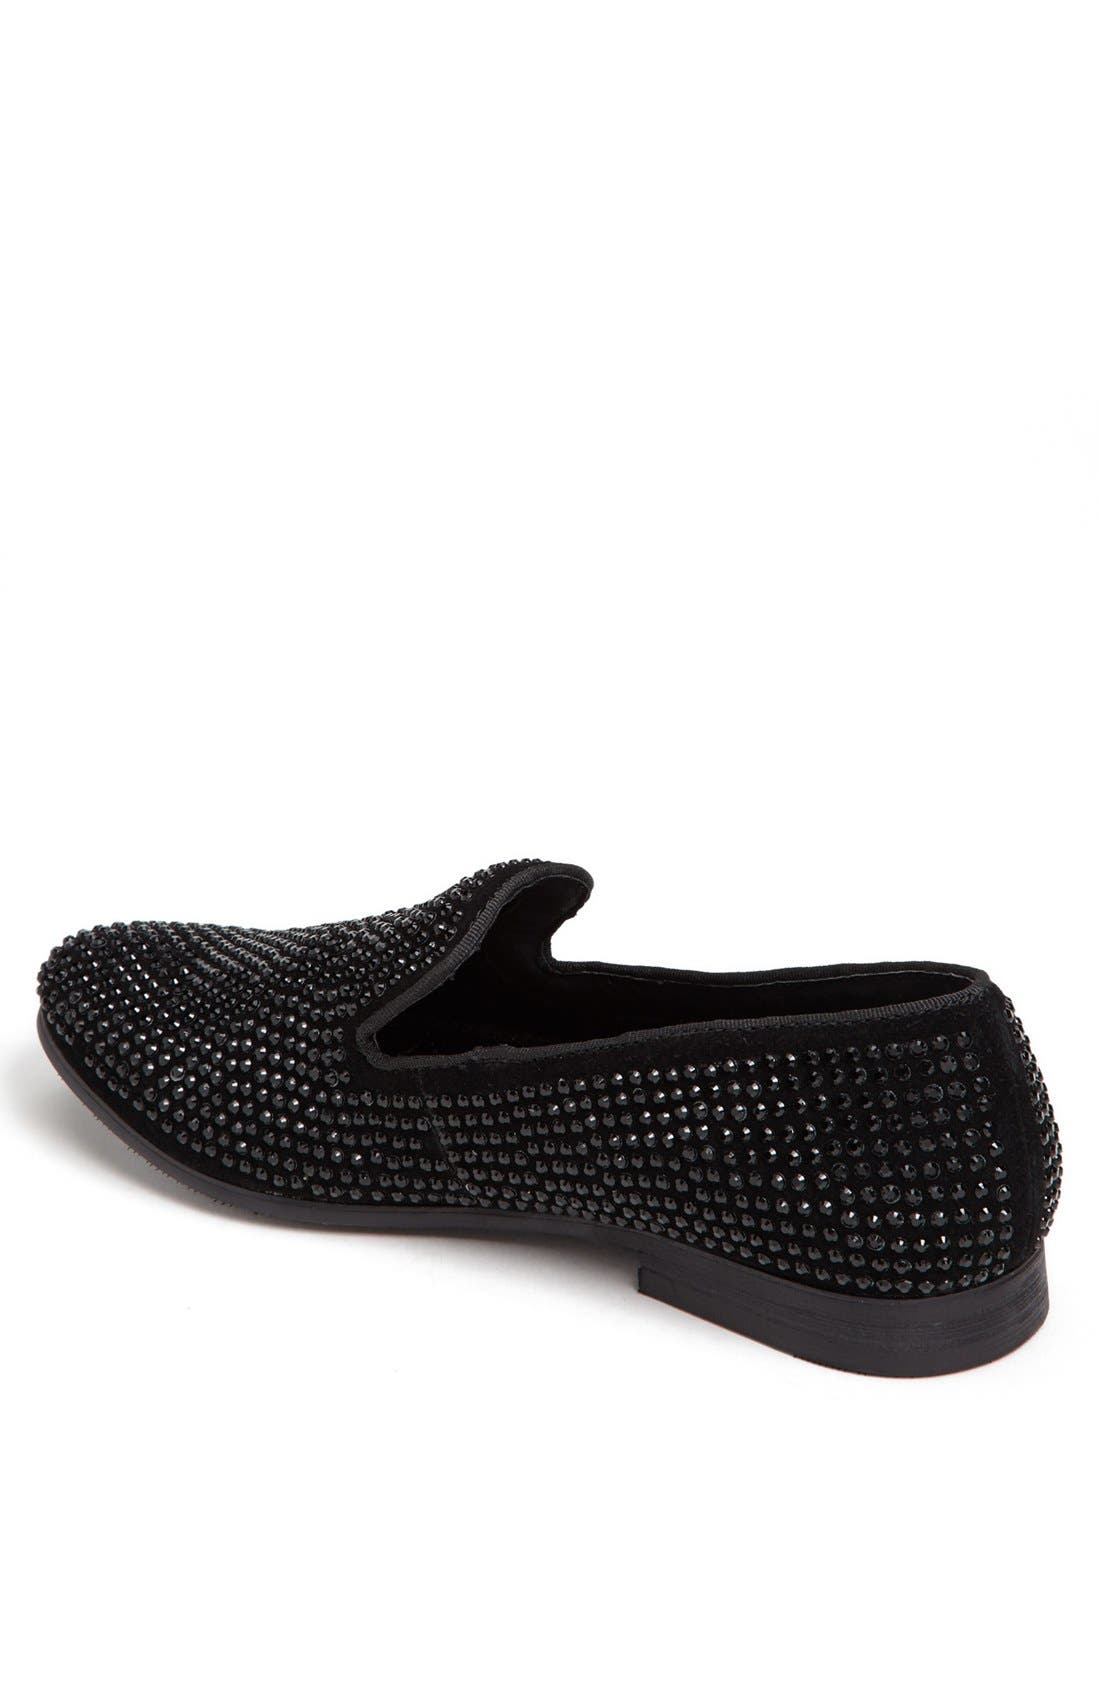 'Caviarr' Slip-On,                             Alternate thumbnail 3, color,                             BLACK RHINESTONES